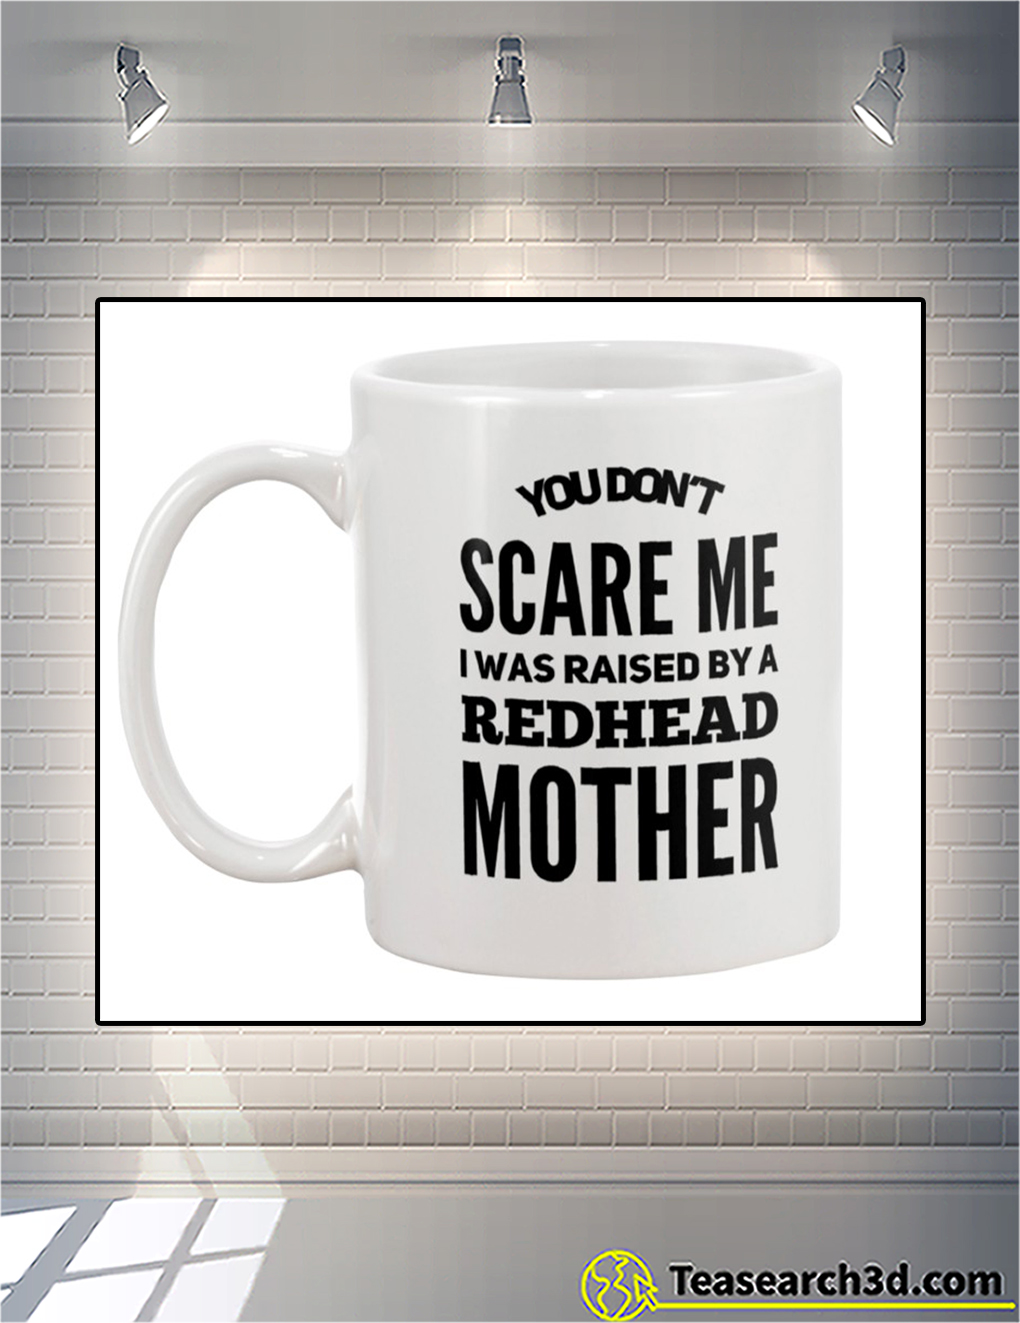 You don't scare me I was raised by a redhead mother mug back